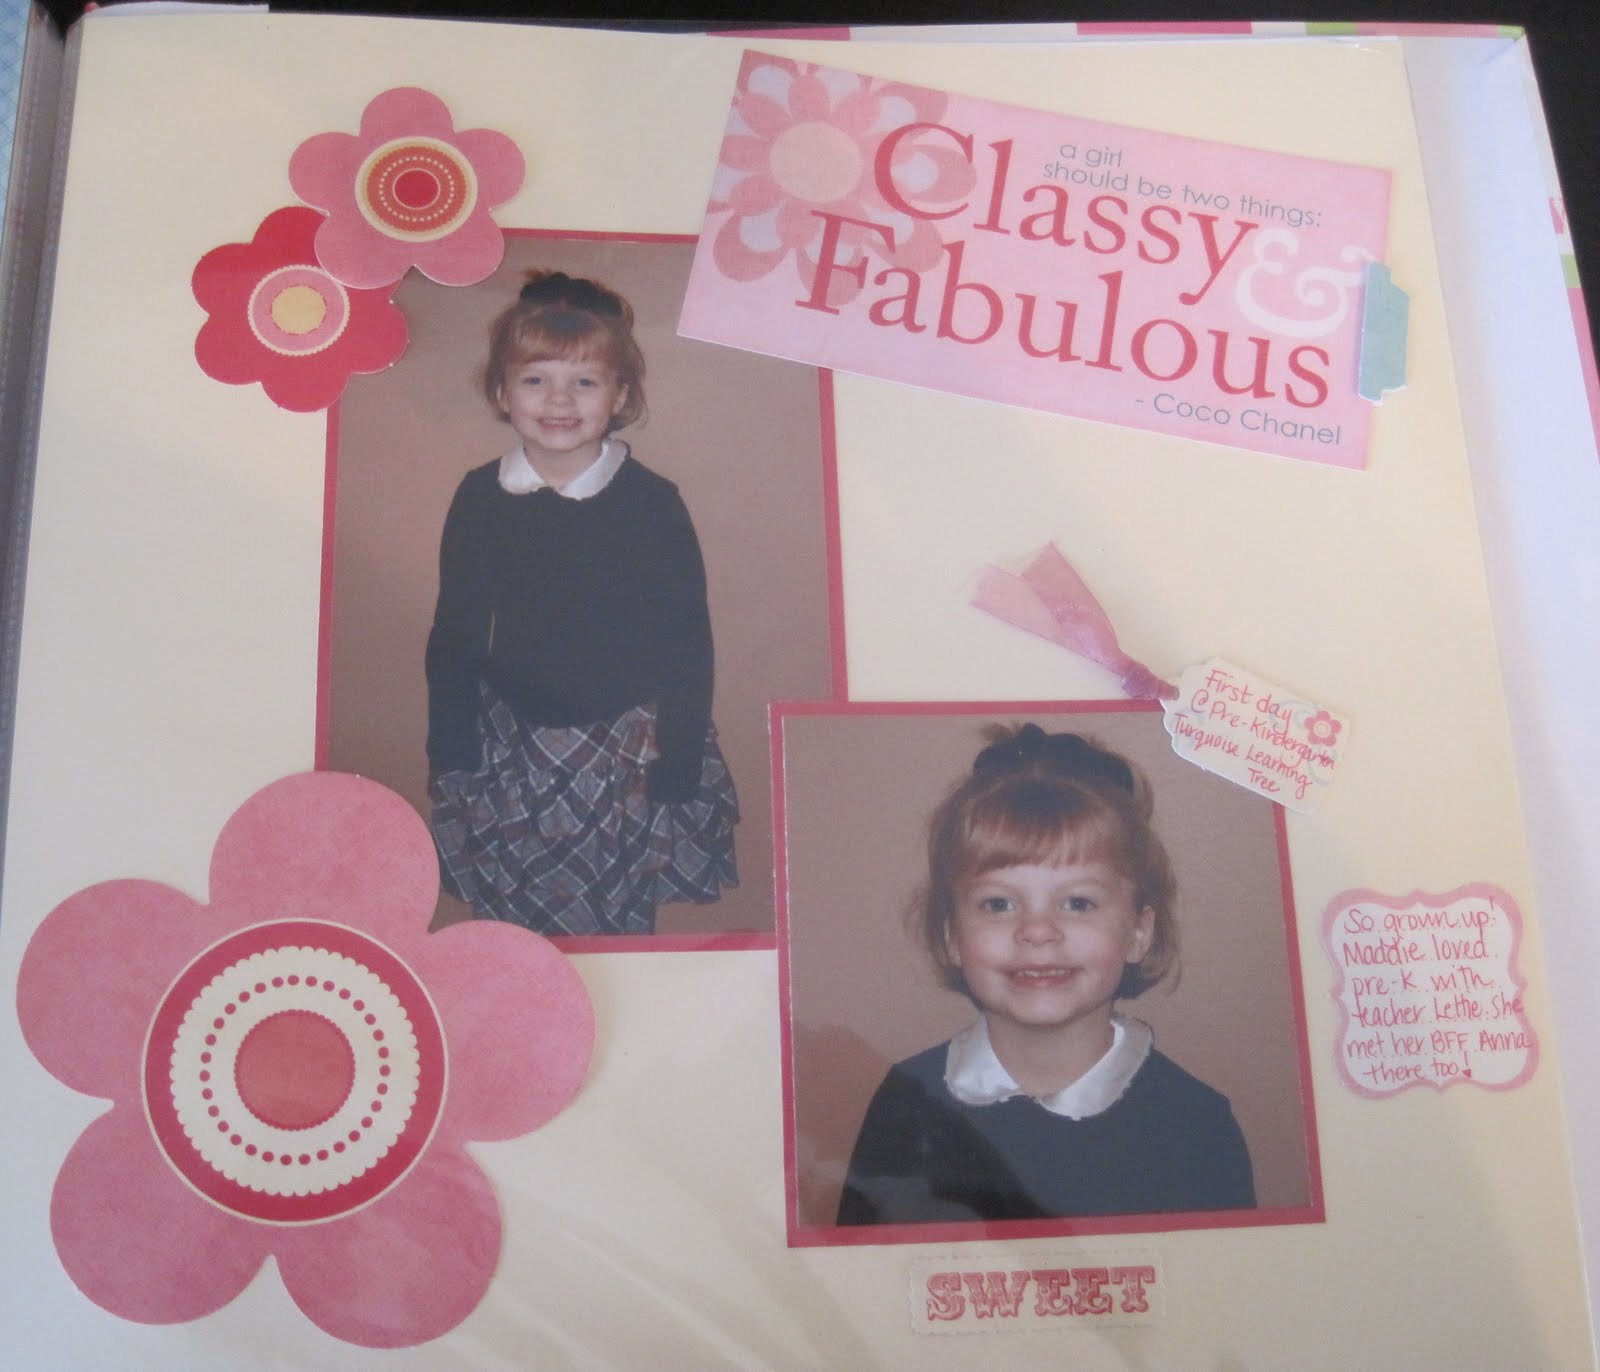 Scrapbook ideas kindergarten - This Was My Daughter S First Day Of Pre Kindergarten And She Was So Excited She Wanted To Wear Her Christmas Dress For The First Day